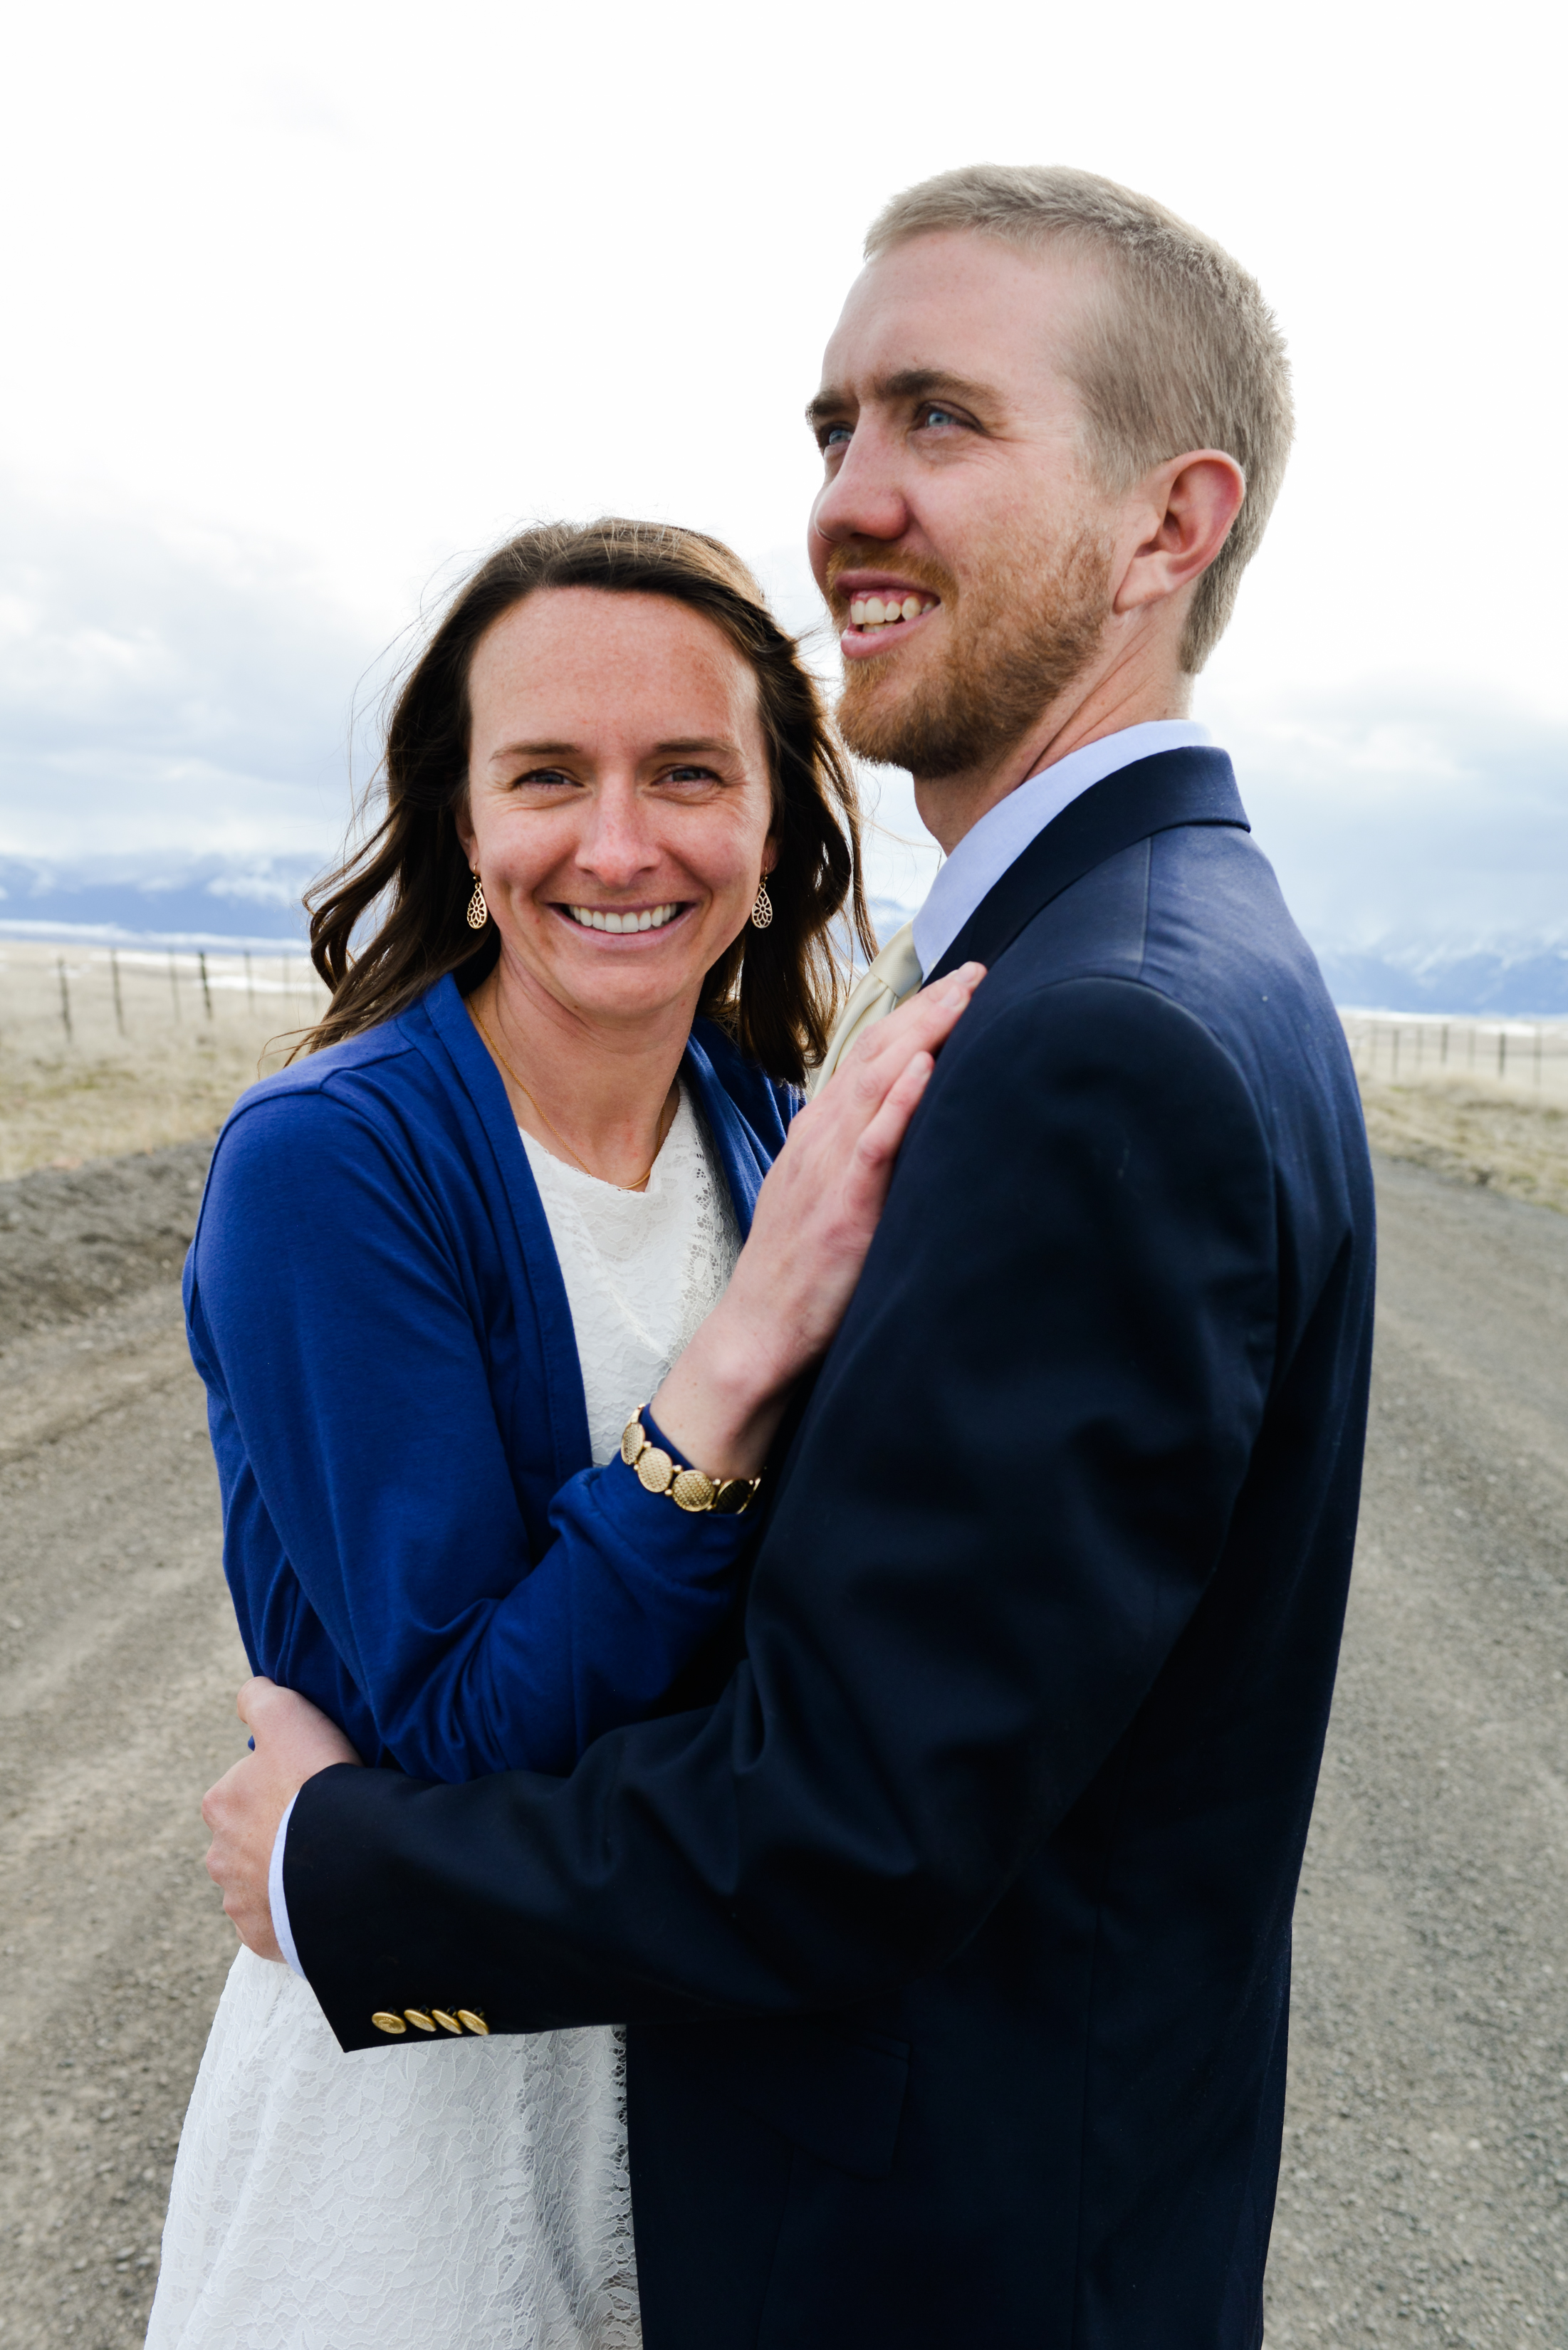 Ryan Melanie Elopement Enterprse Oregon Spring 2019 Please Credit Talia Jean Galvin (147 of 220).jpg